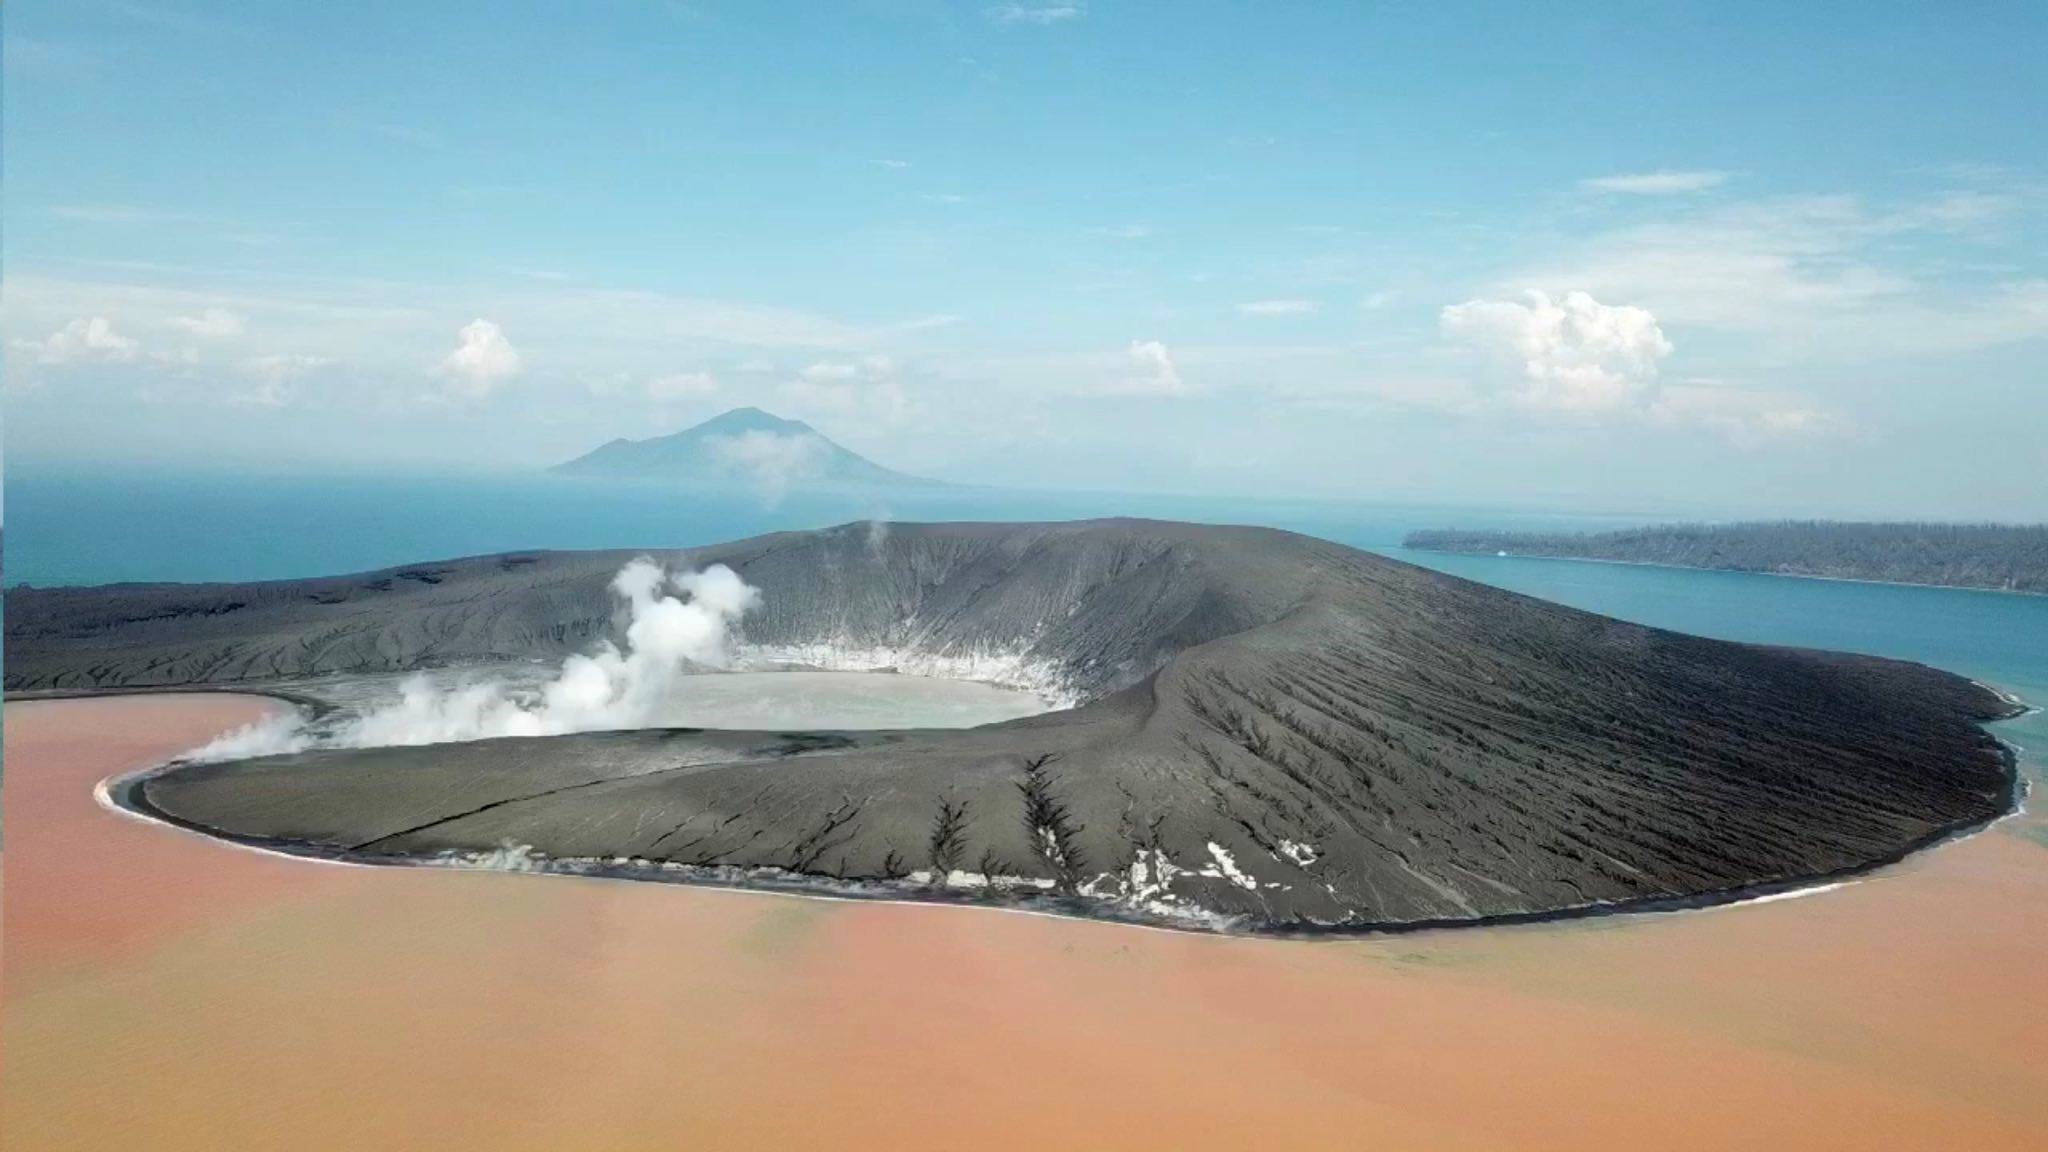 January 14 , 2019.  EN.  Indonesia : Anak Krakatau , Chile : Nevados de Chillan , Nicaragua : San Cristobal , Papua New Guinea : Manam , Mexico : Popocatepetl .